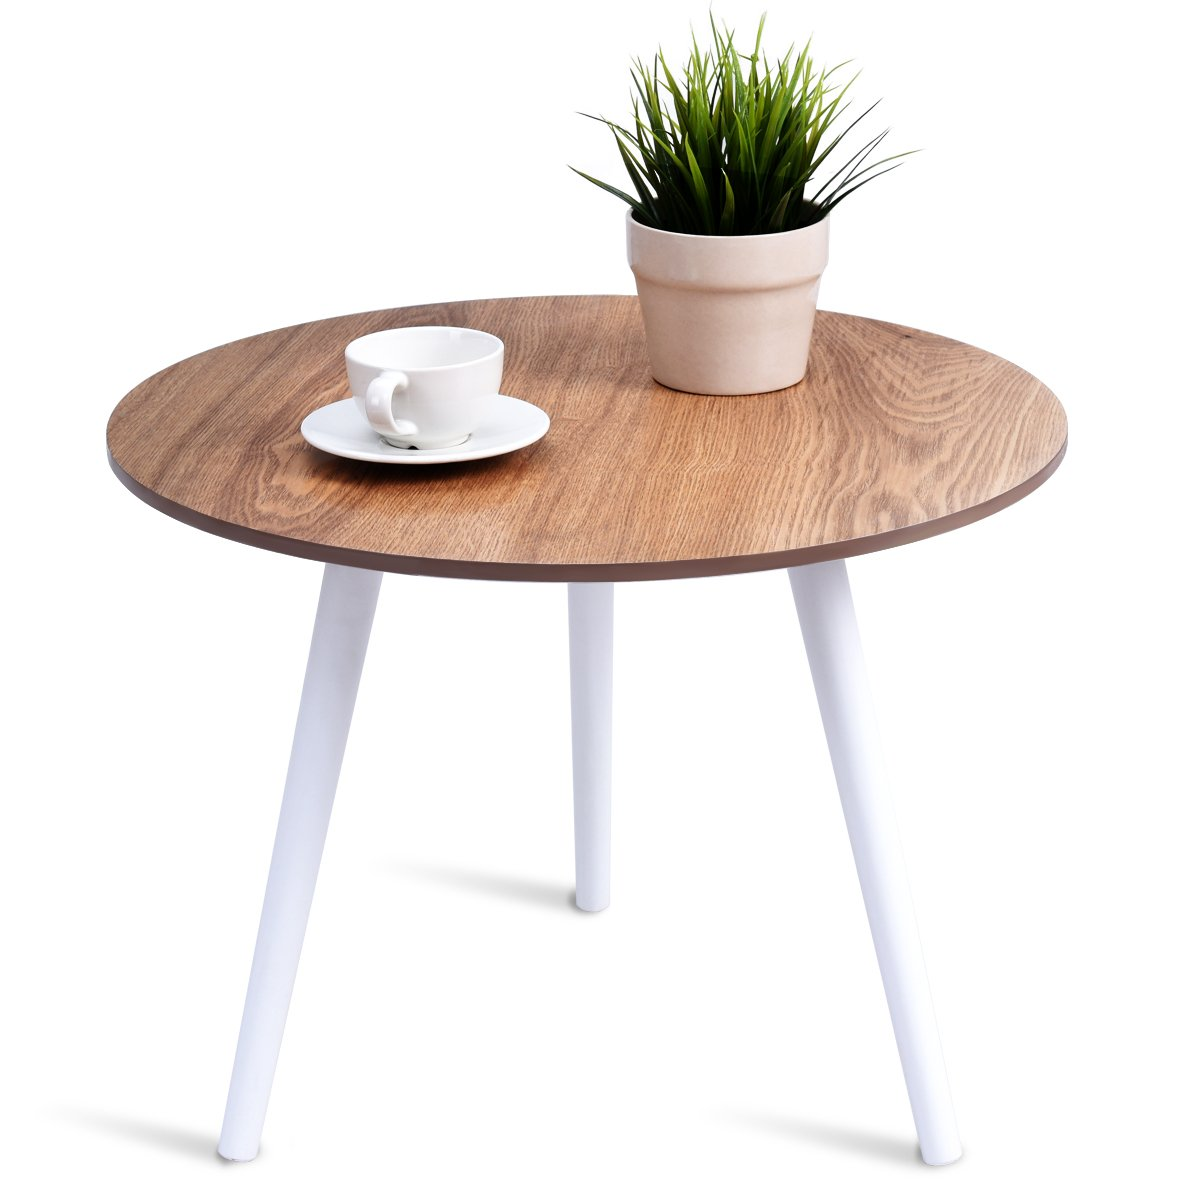 Giantex Coffee Table Round Modern Wood Table Pine Furniture Environmentally  for Magazines, Books & Plants Side Table Round Table